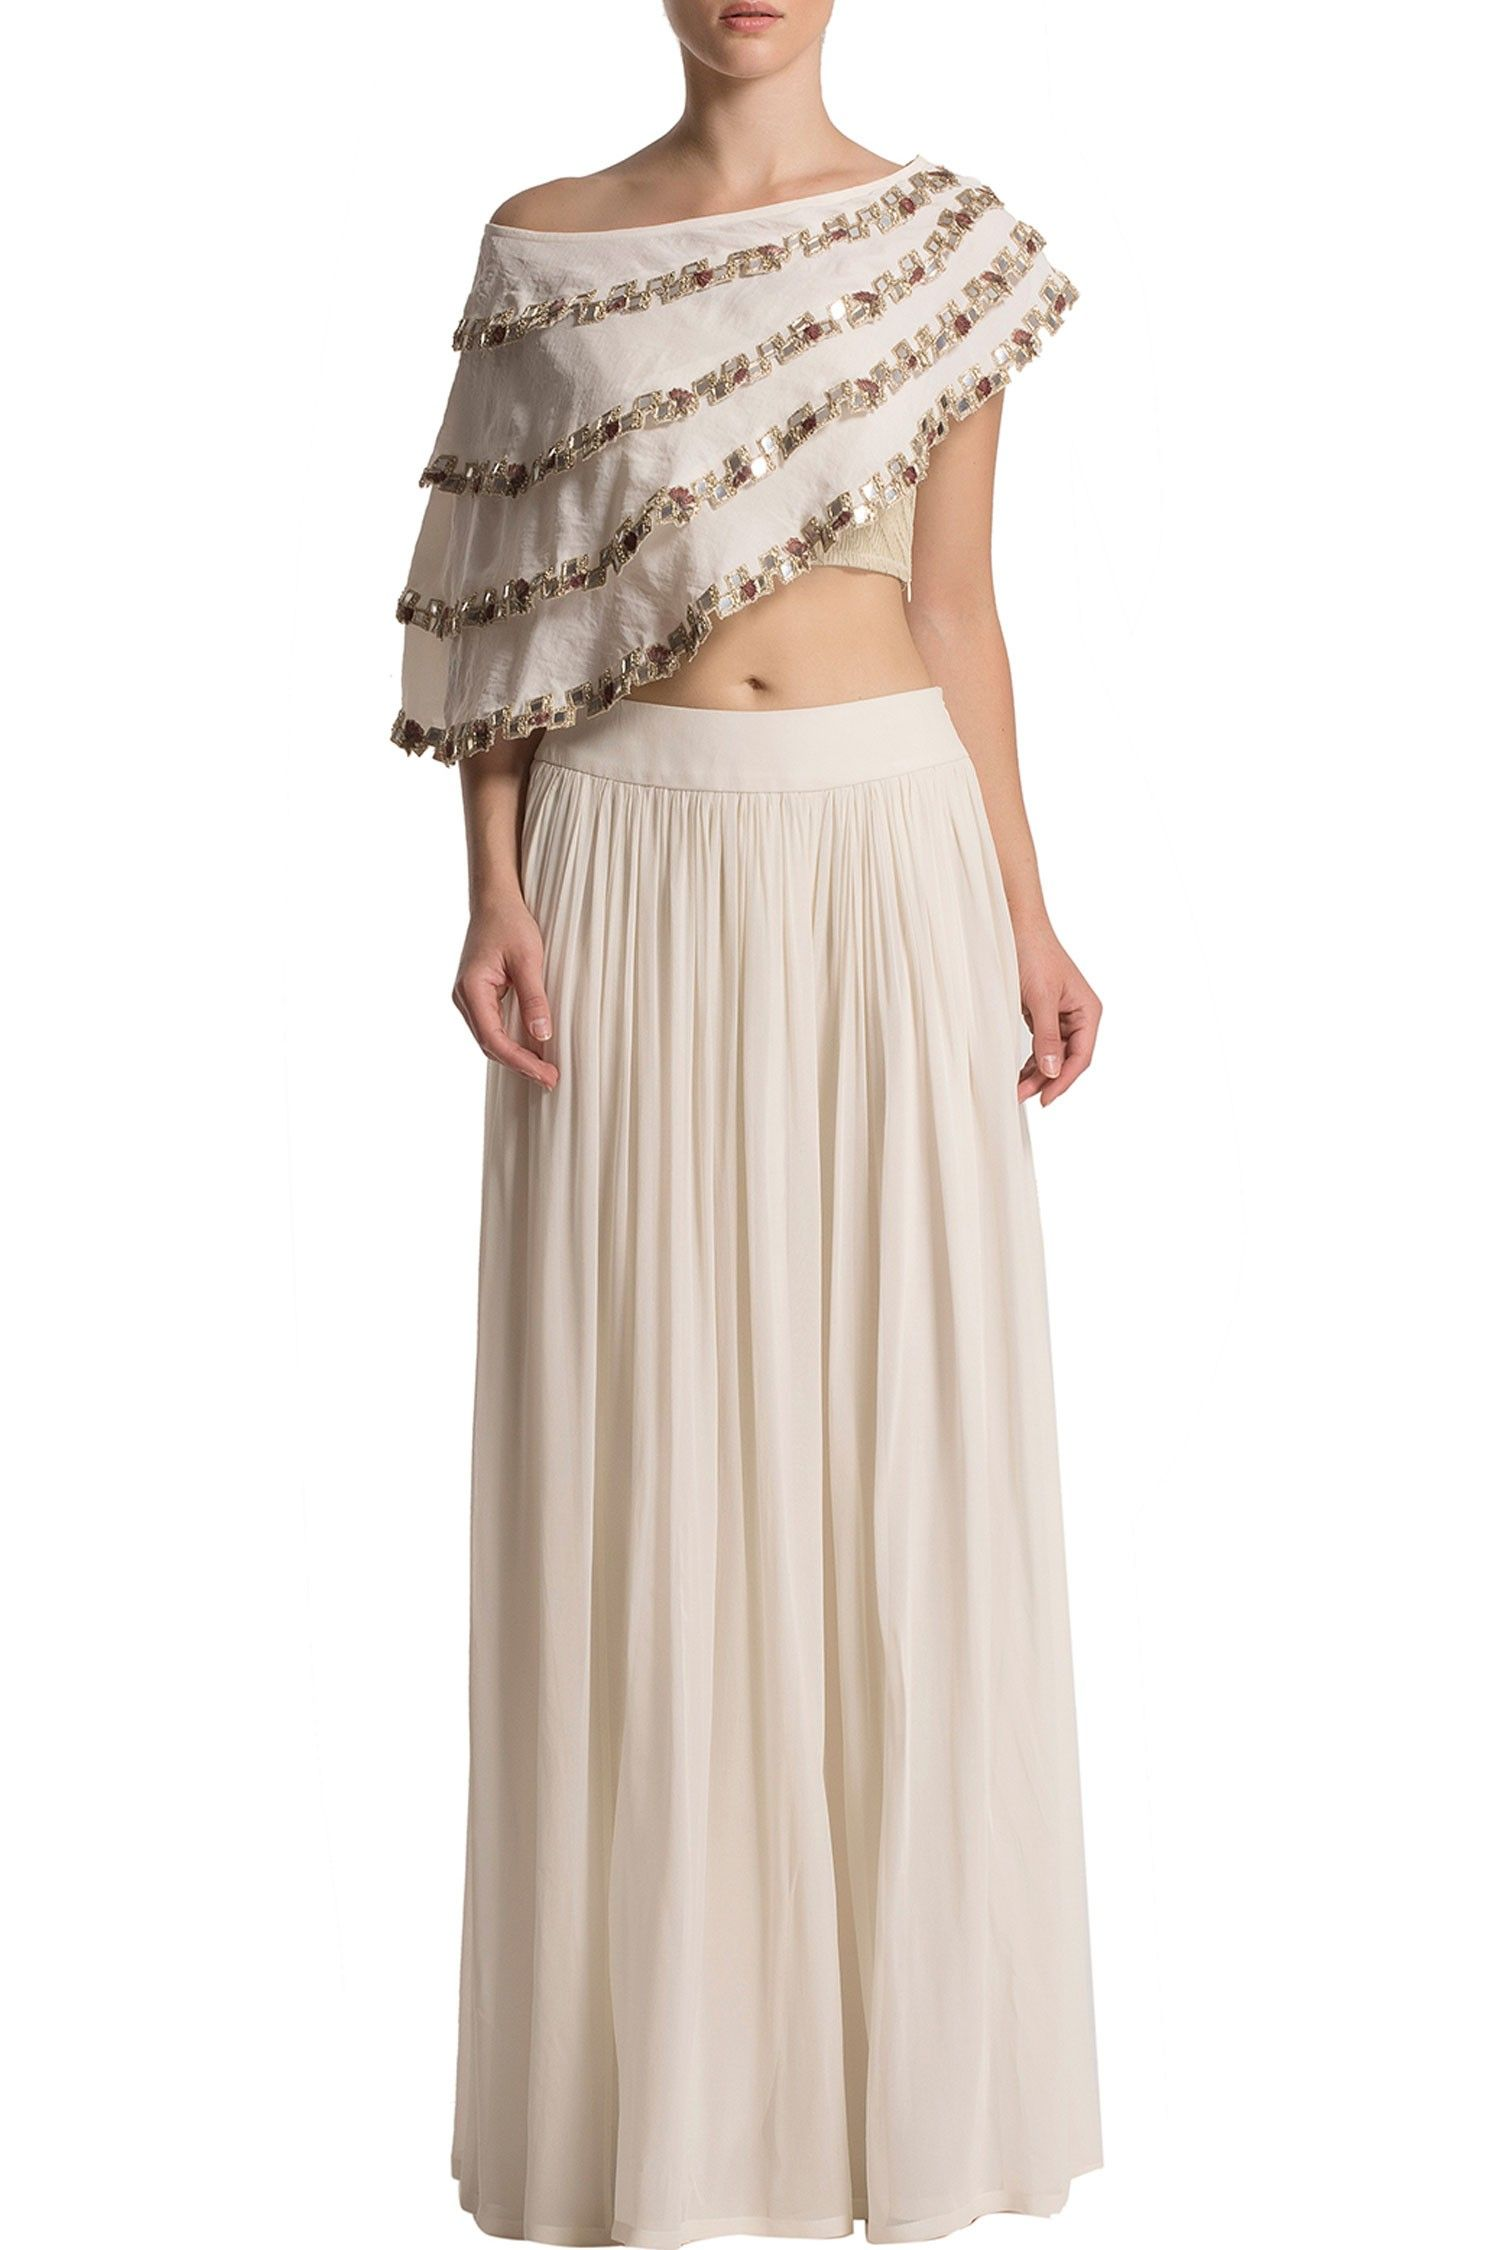 Cape and palazzo set gowns pinterest palazzo cape and indian wear